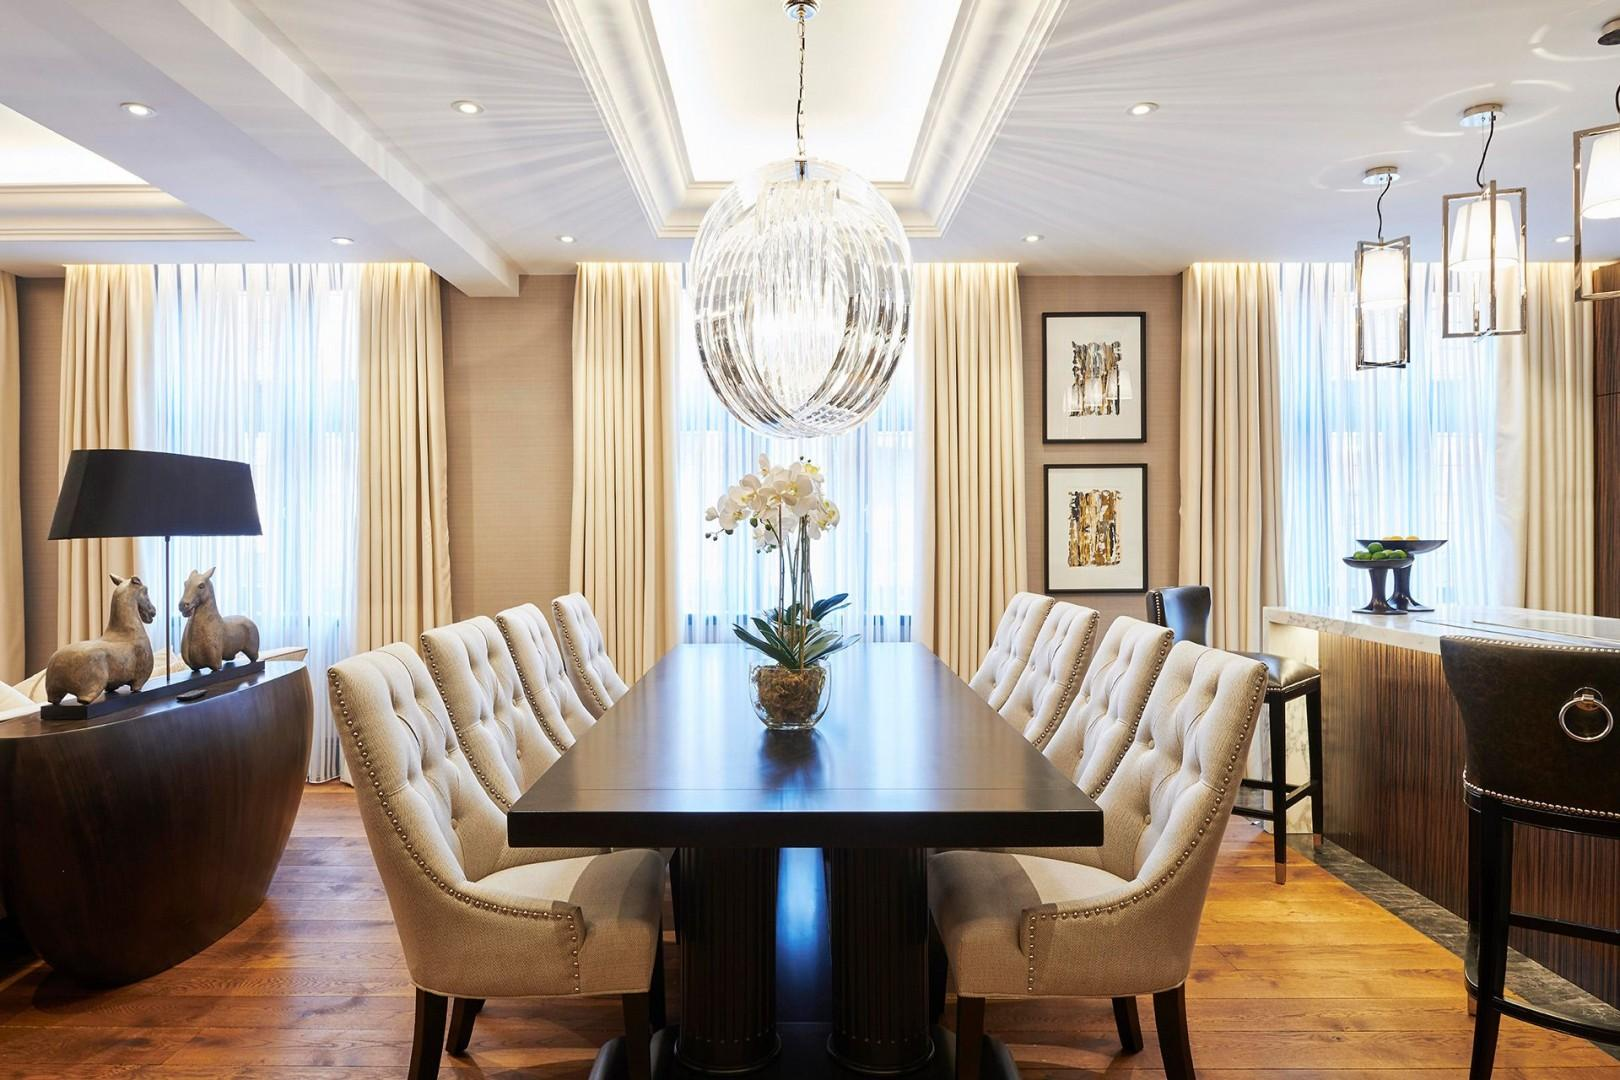 Large dining table will accommodate all guests